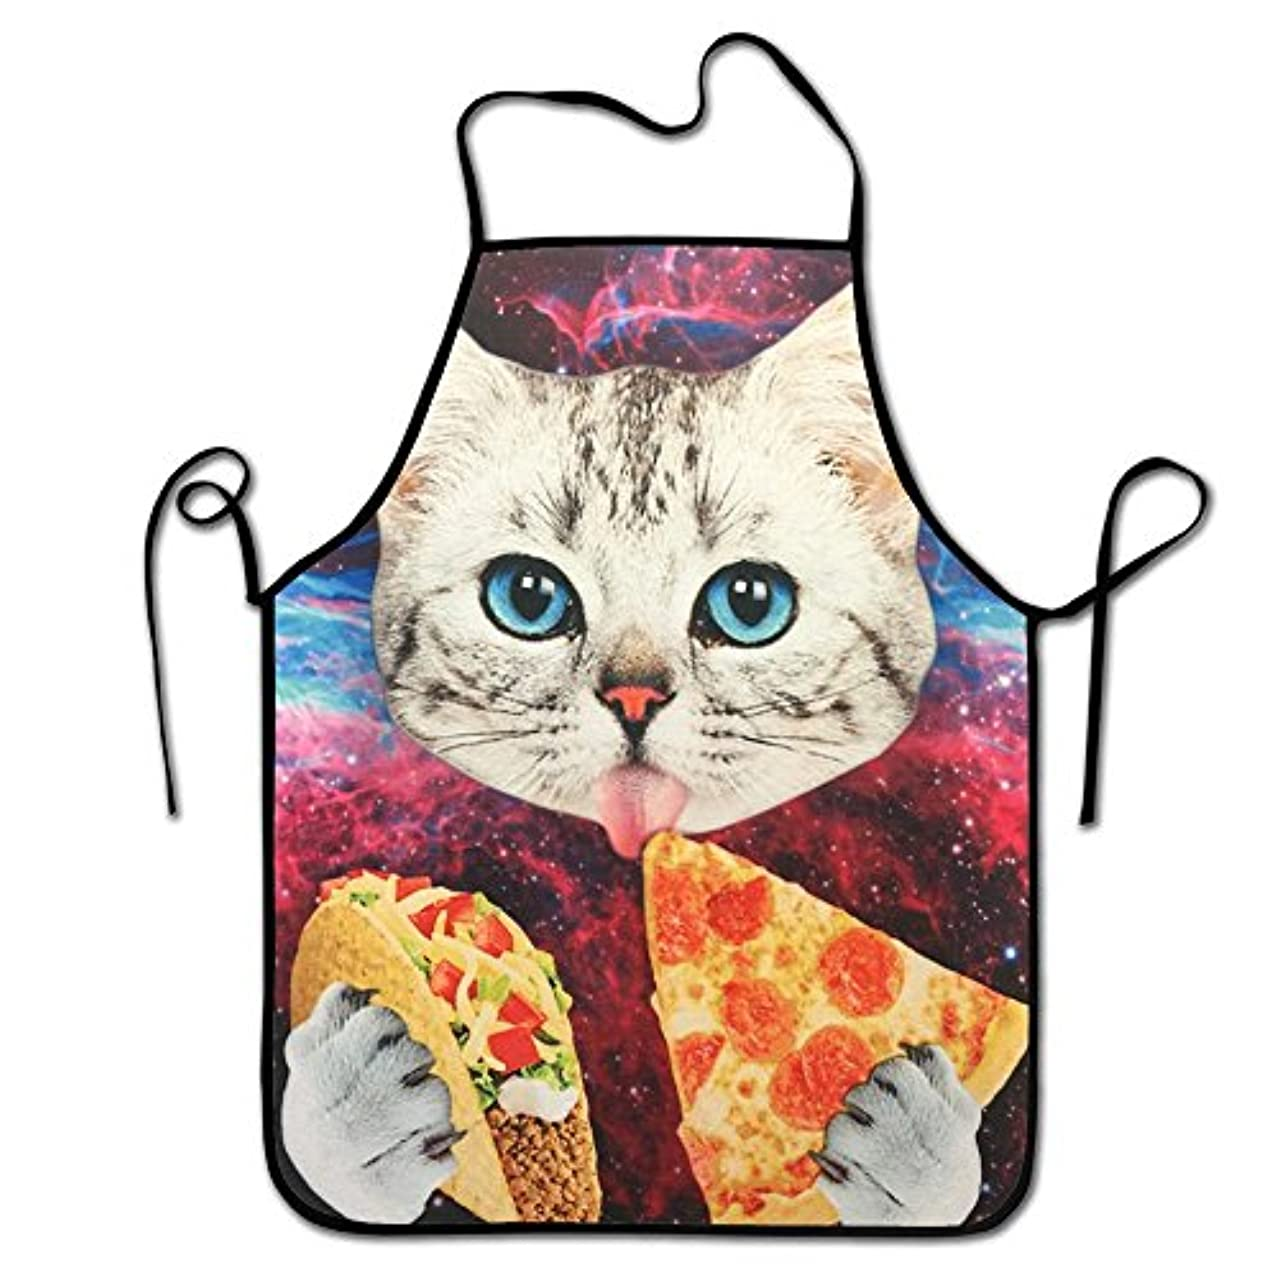 Rossne G sun Custom New Galaxy Space Lovely Kitten Cat Eat Pizza Funny Comfortable Garden Kitchen Aprons Adjustable Neck Strap